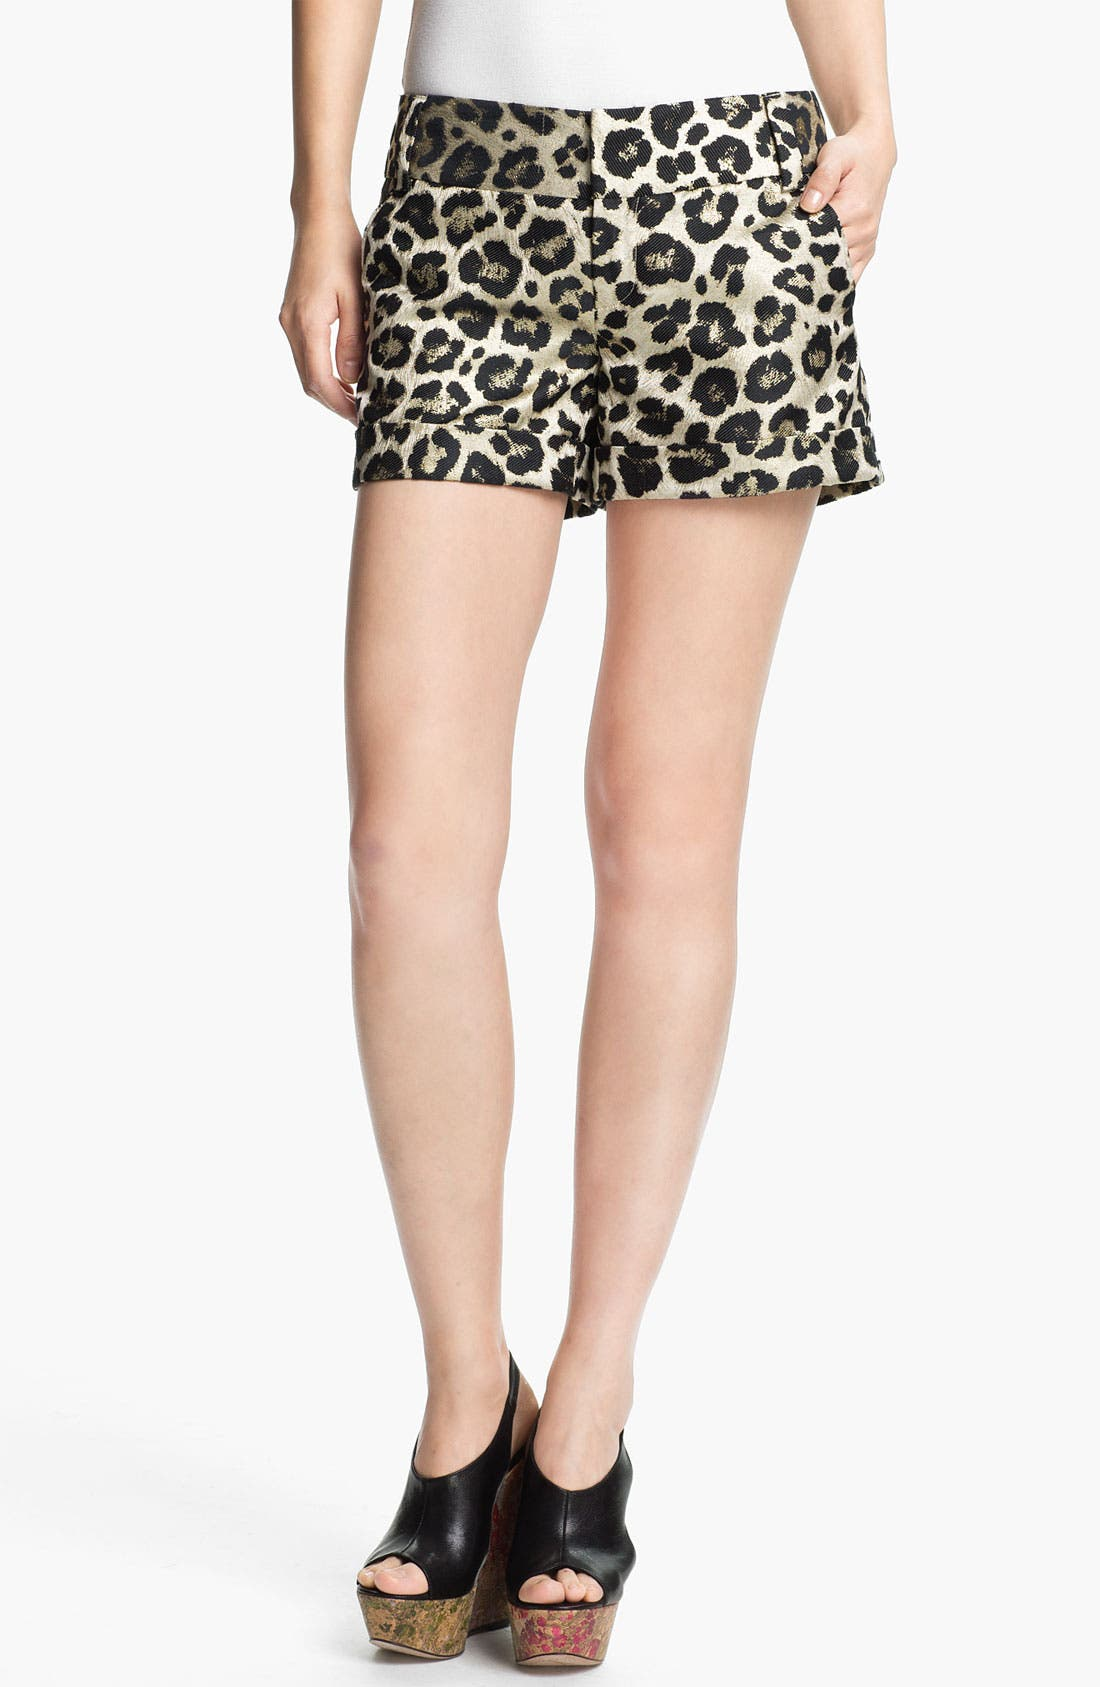 Alternate Image 1 Selected - Alice + Olivia Leopard Print Cady Shorts